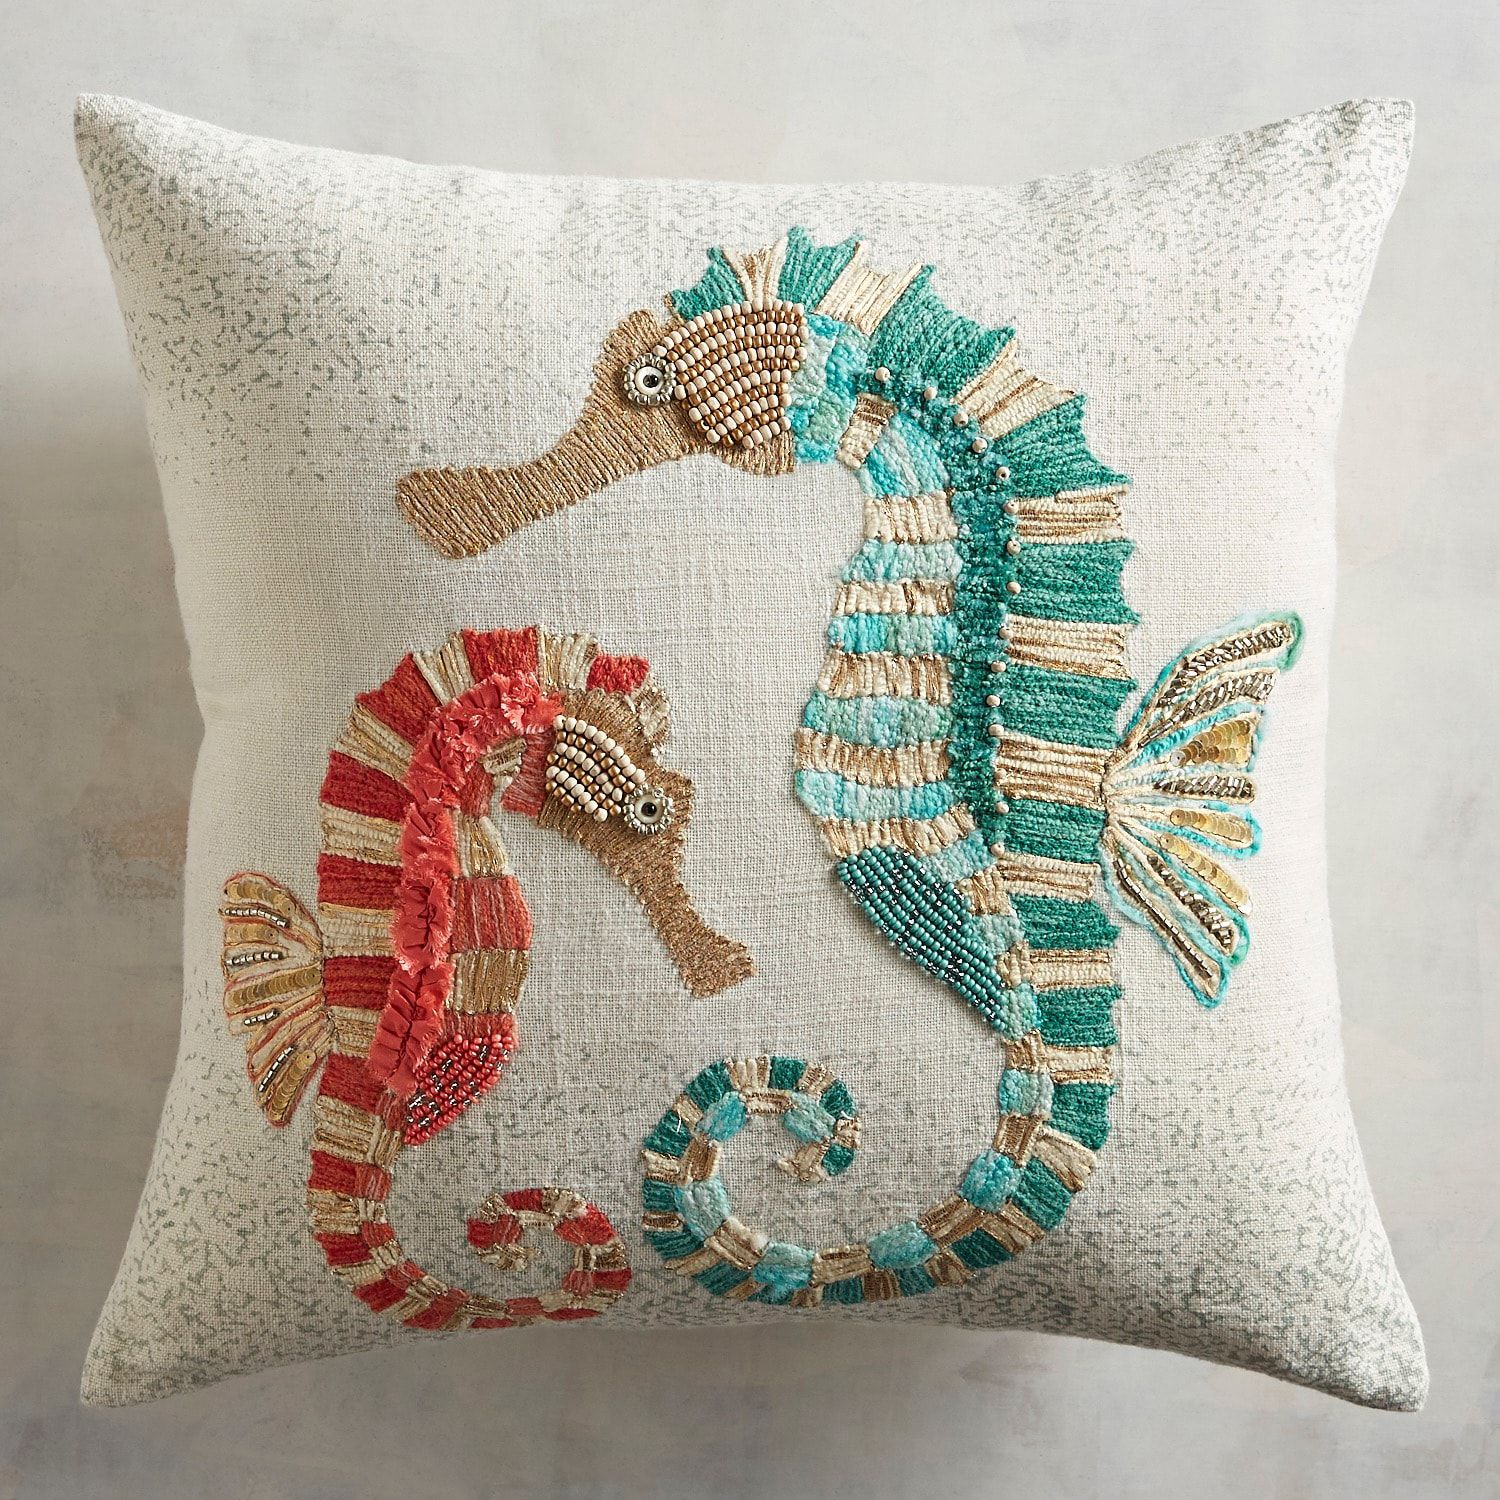 Embroidered Two Seahorses Pillow Seahorse Pillows Pillow Pattern Pillows